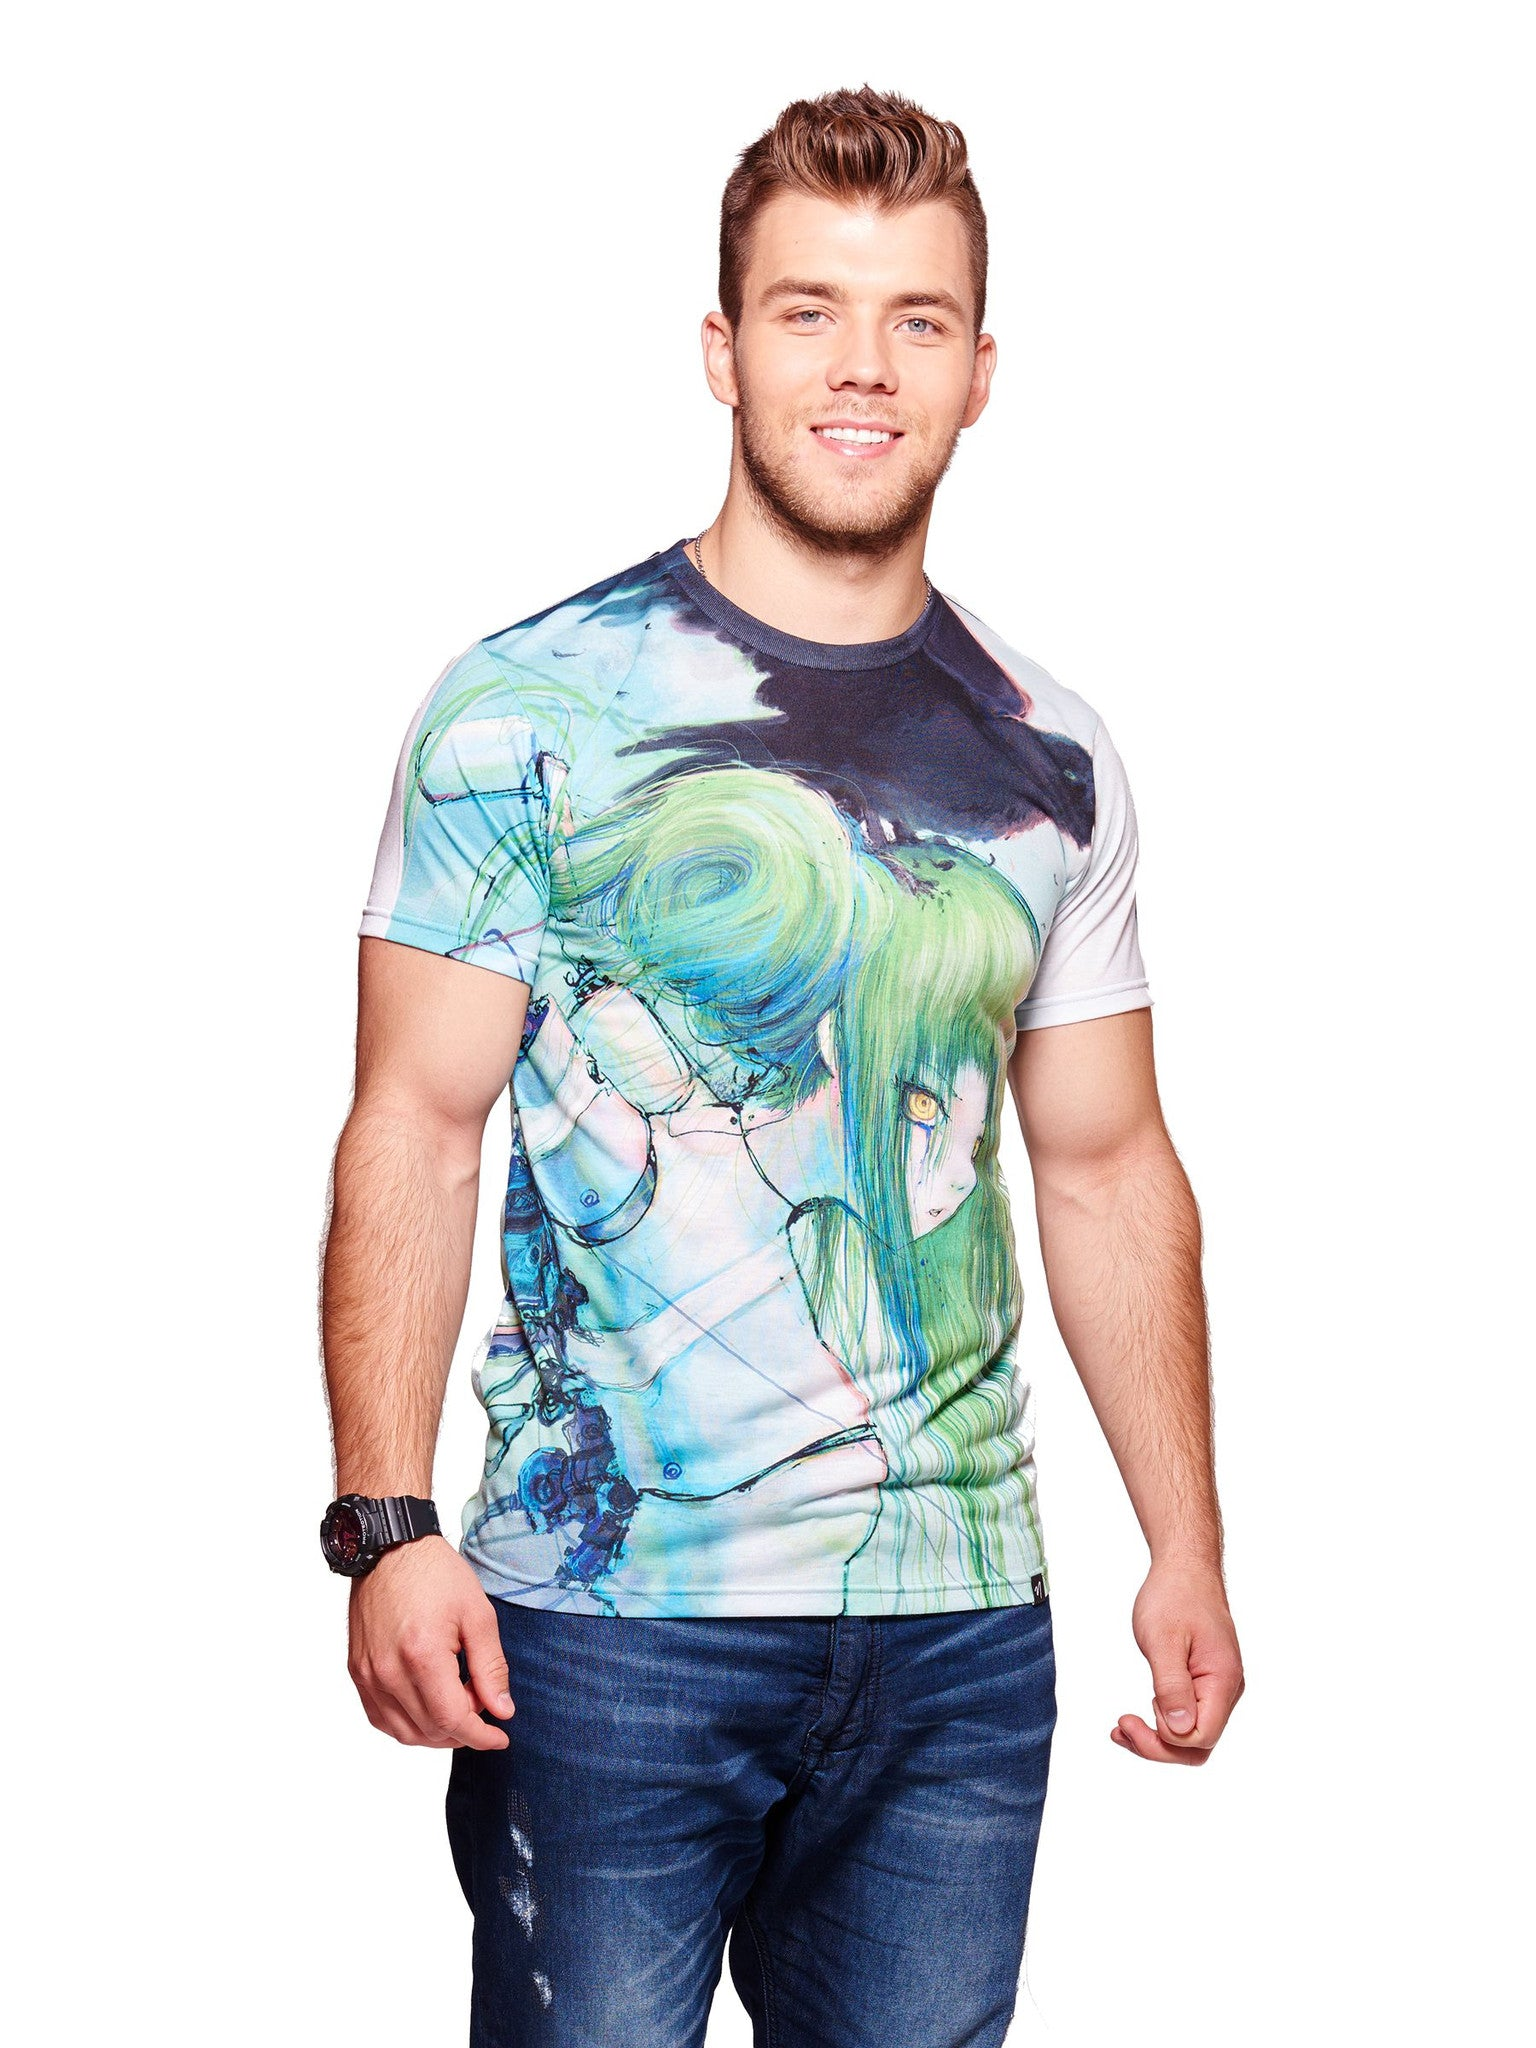 Disassembled Tears Men's Classic T-Shirt - Nuvango  - 1